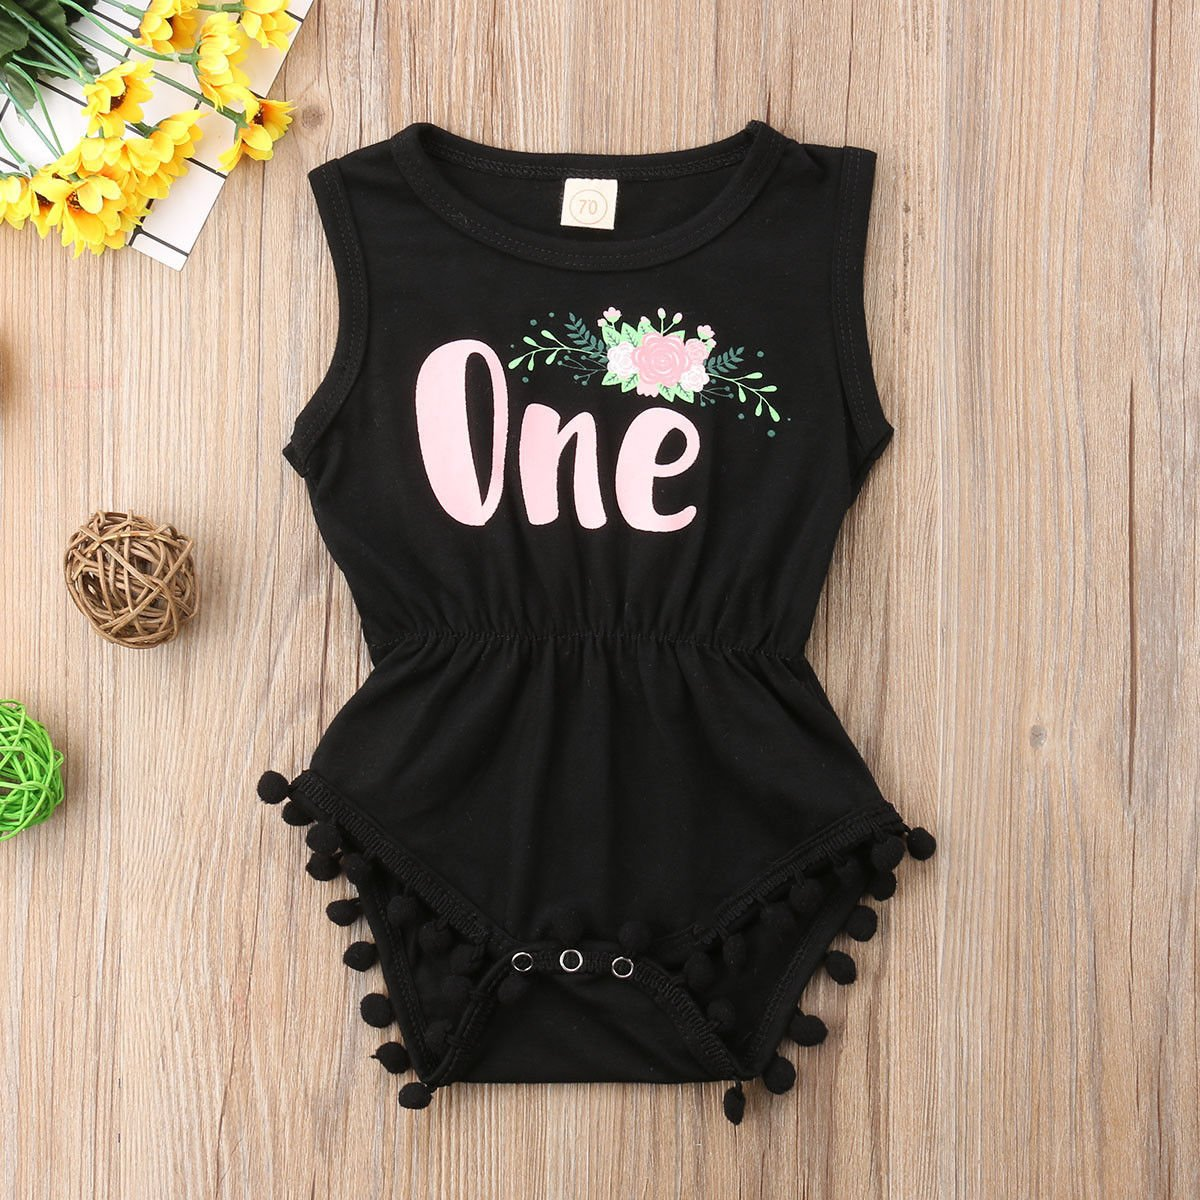 10cfc7ed9 Amazon.com: ONE'S New Baby Girls 1st Birthday Outfits Summer Floral Wild  Bodysuit Romper: Clothing